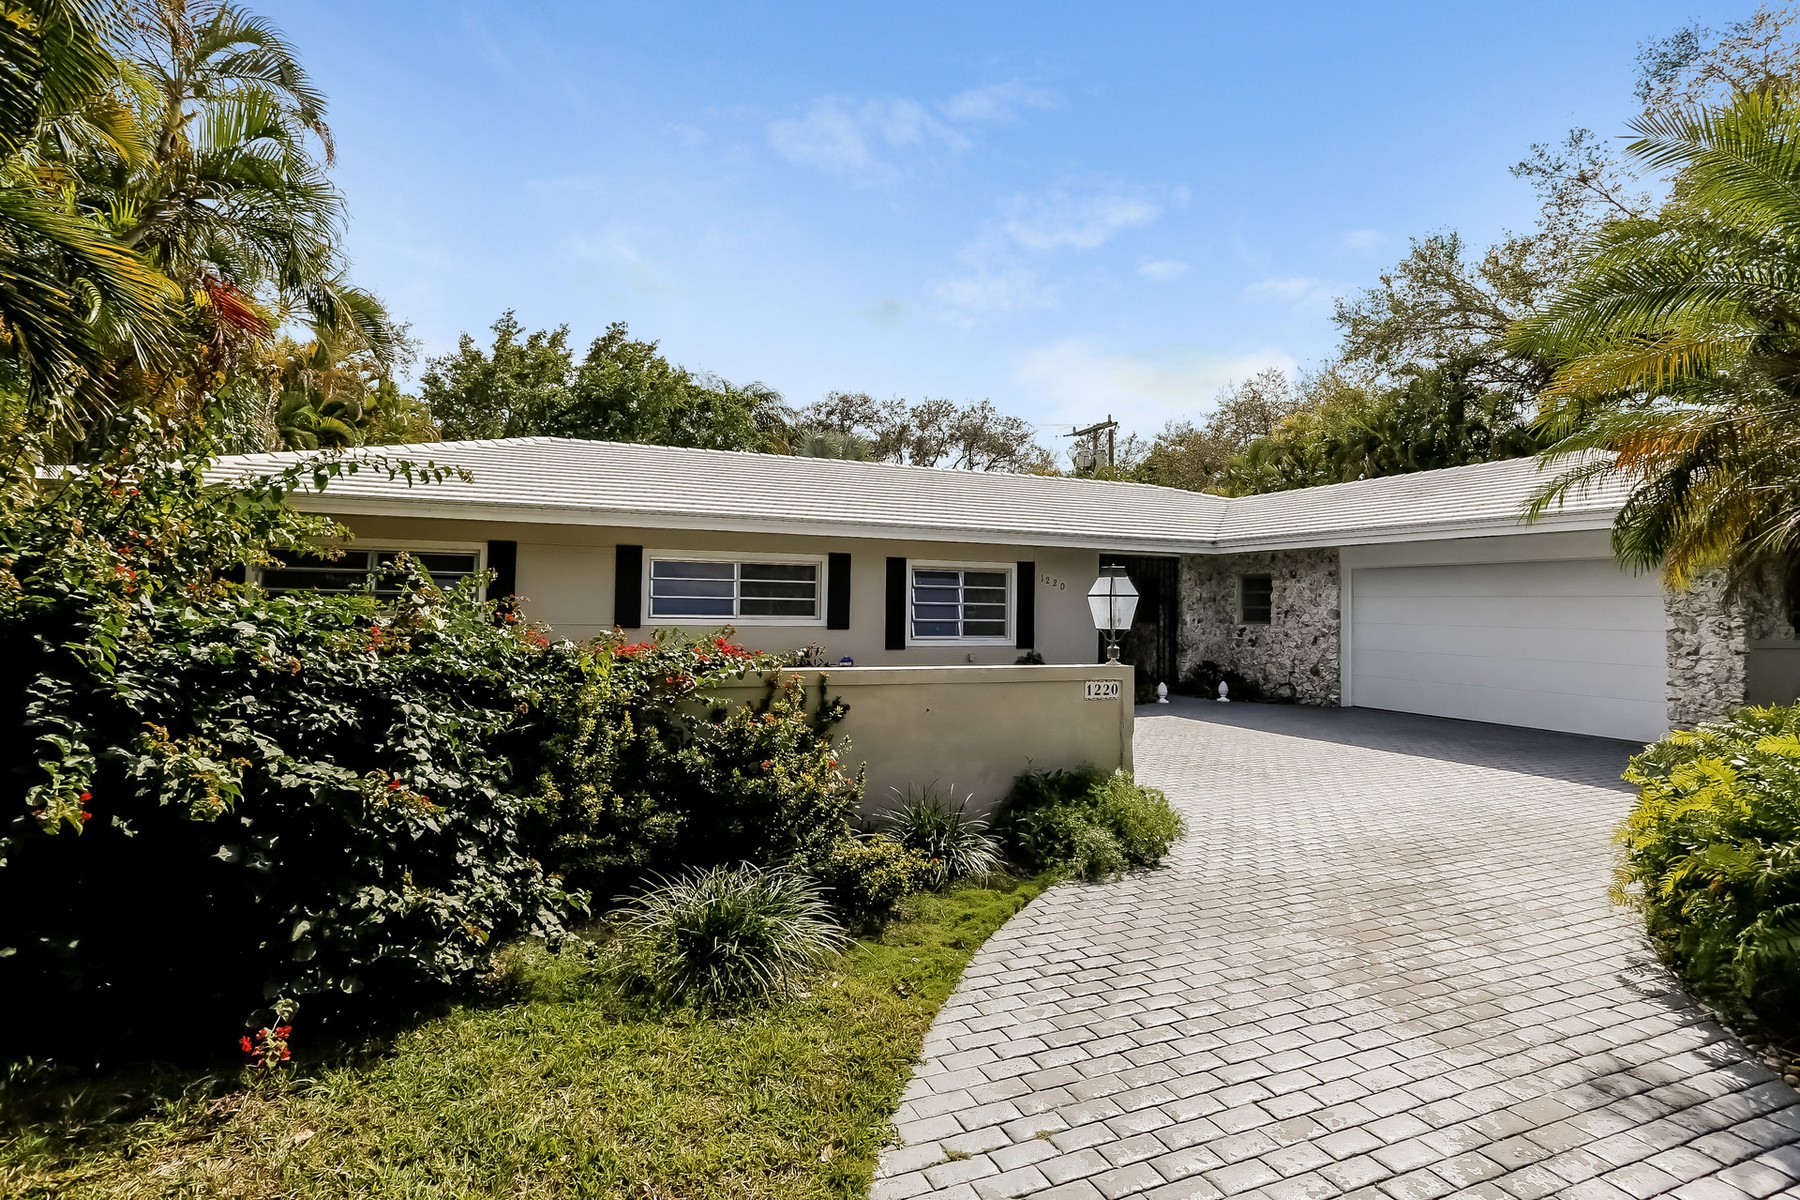 Single Family Home for Sale at 1220 Hardee Rd Coral Gables, Florida, 33146 United States